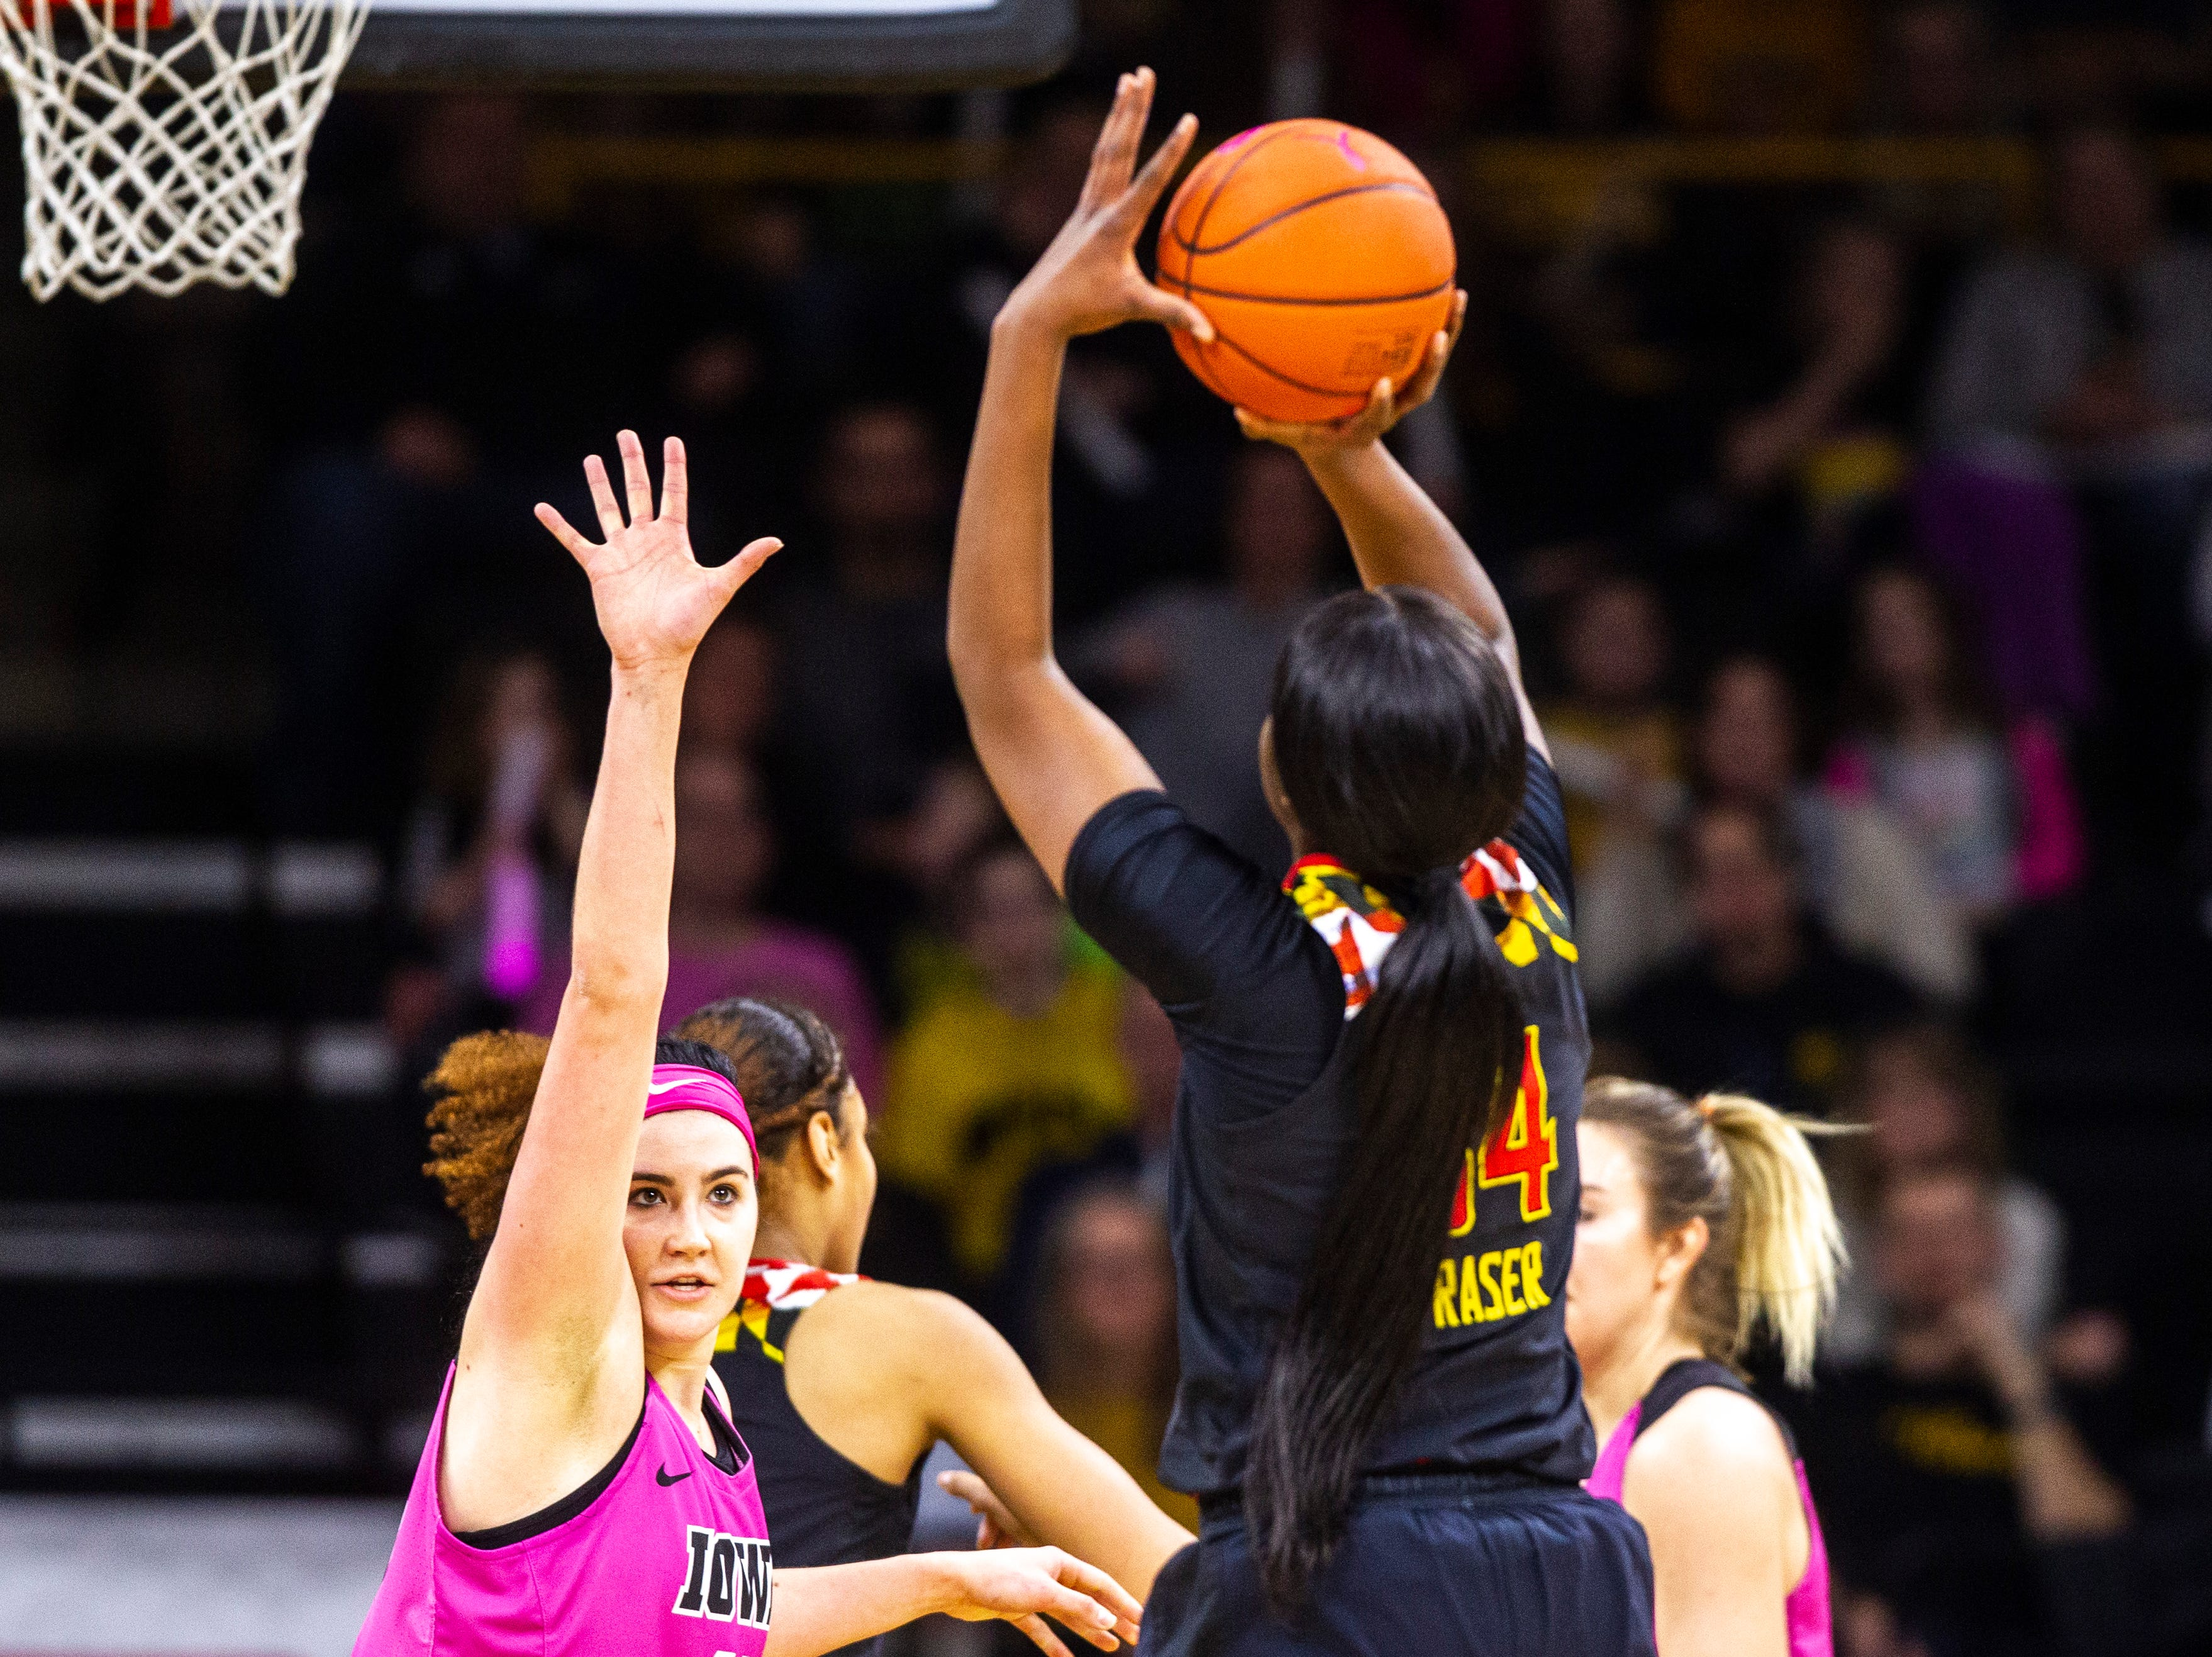 Maryland forward Brianna Fraser (34) attempts a basket while Iowa center Megan Gustafson defends during a NCAA Big Ten Conference women's basketball game on Sunday, Feb. 17, 2019 at Carver-Hawkeye Arena in Iowa City, Iowa.